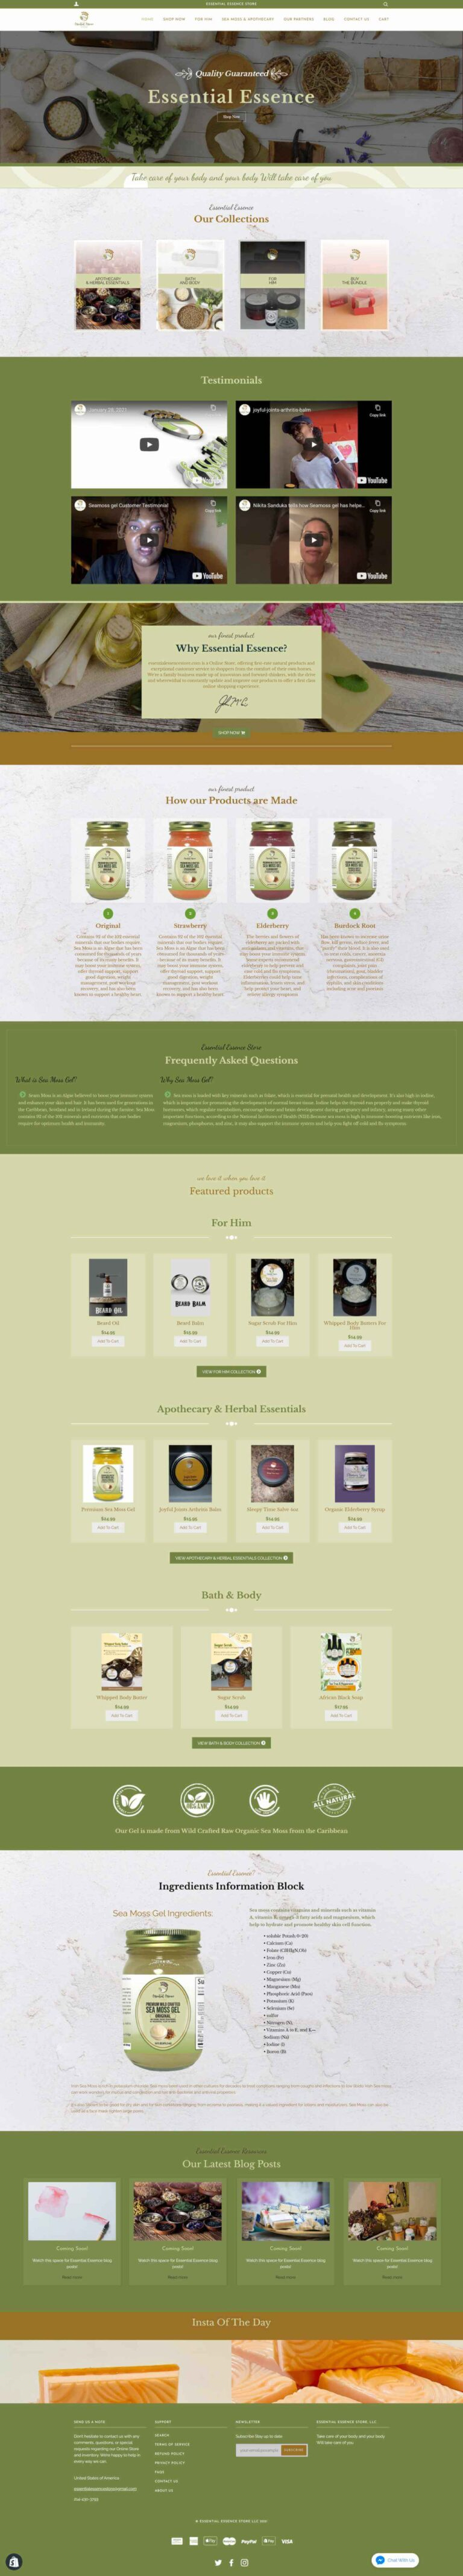 Essential Essence store Website redesign